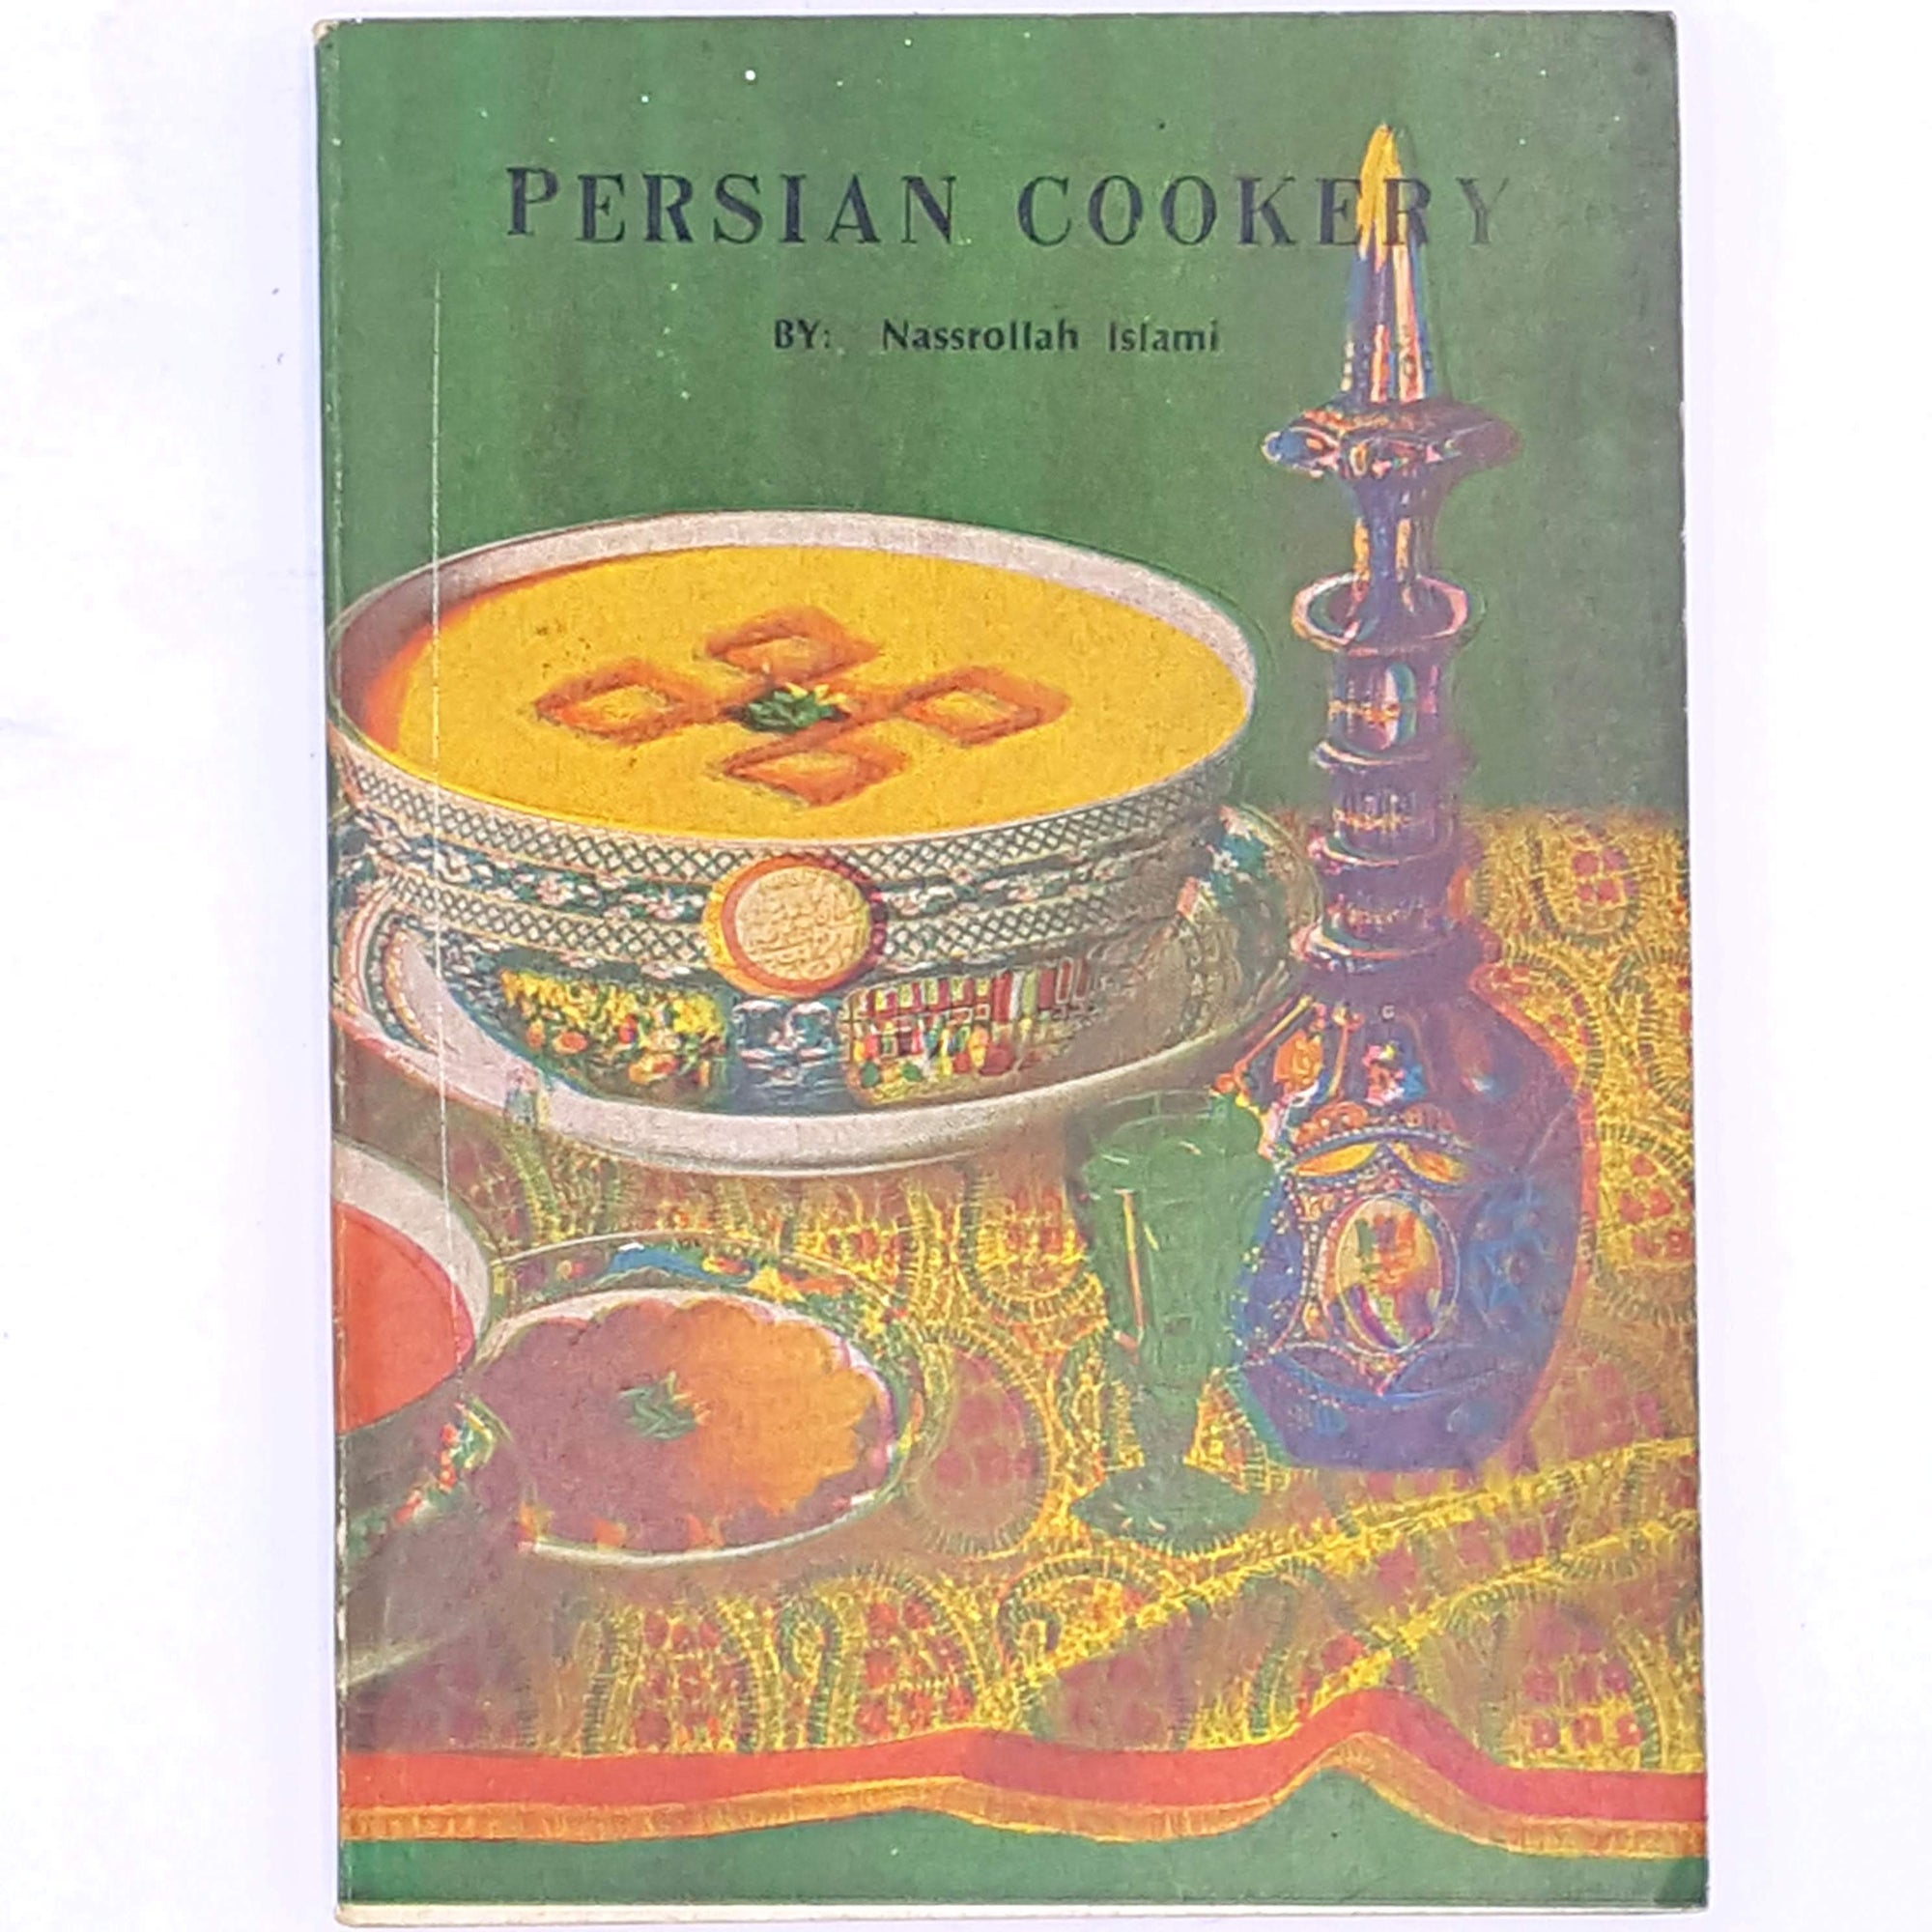 Persian Cookery, Nassrollah Islami